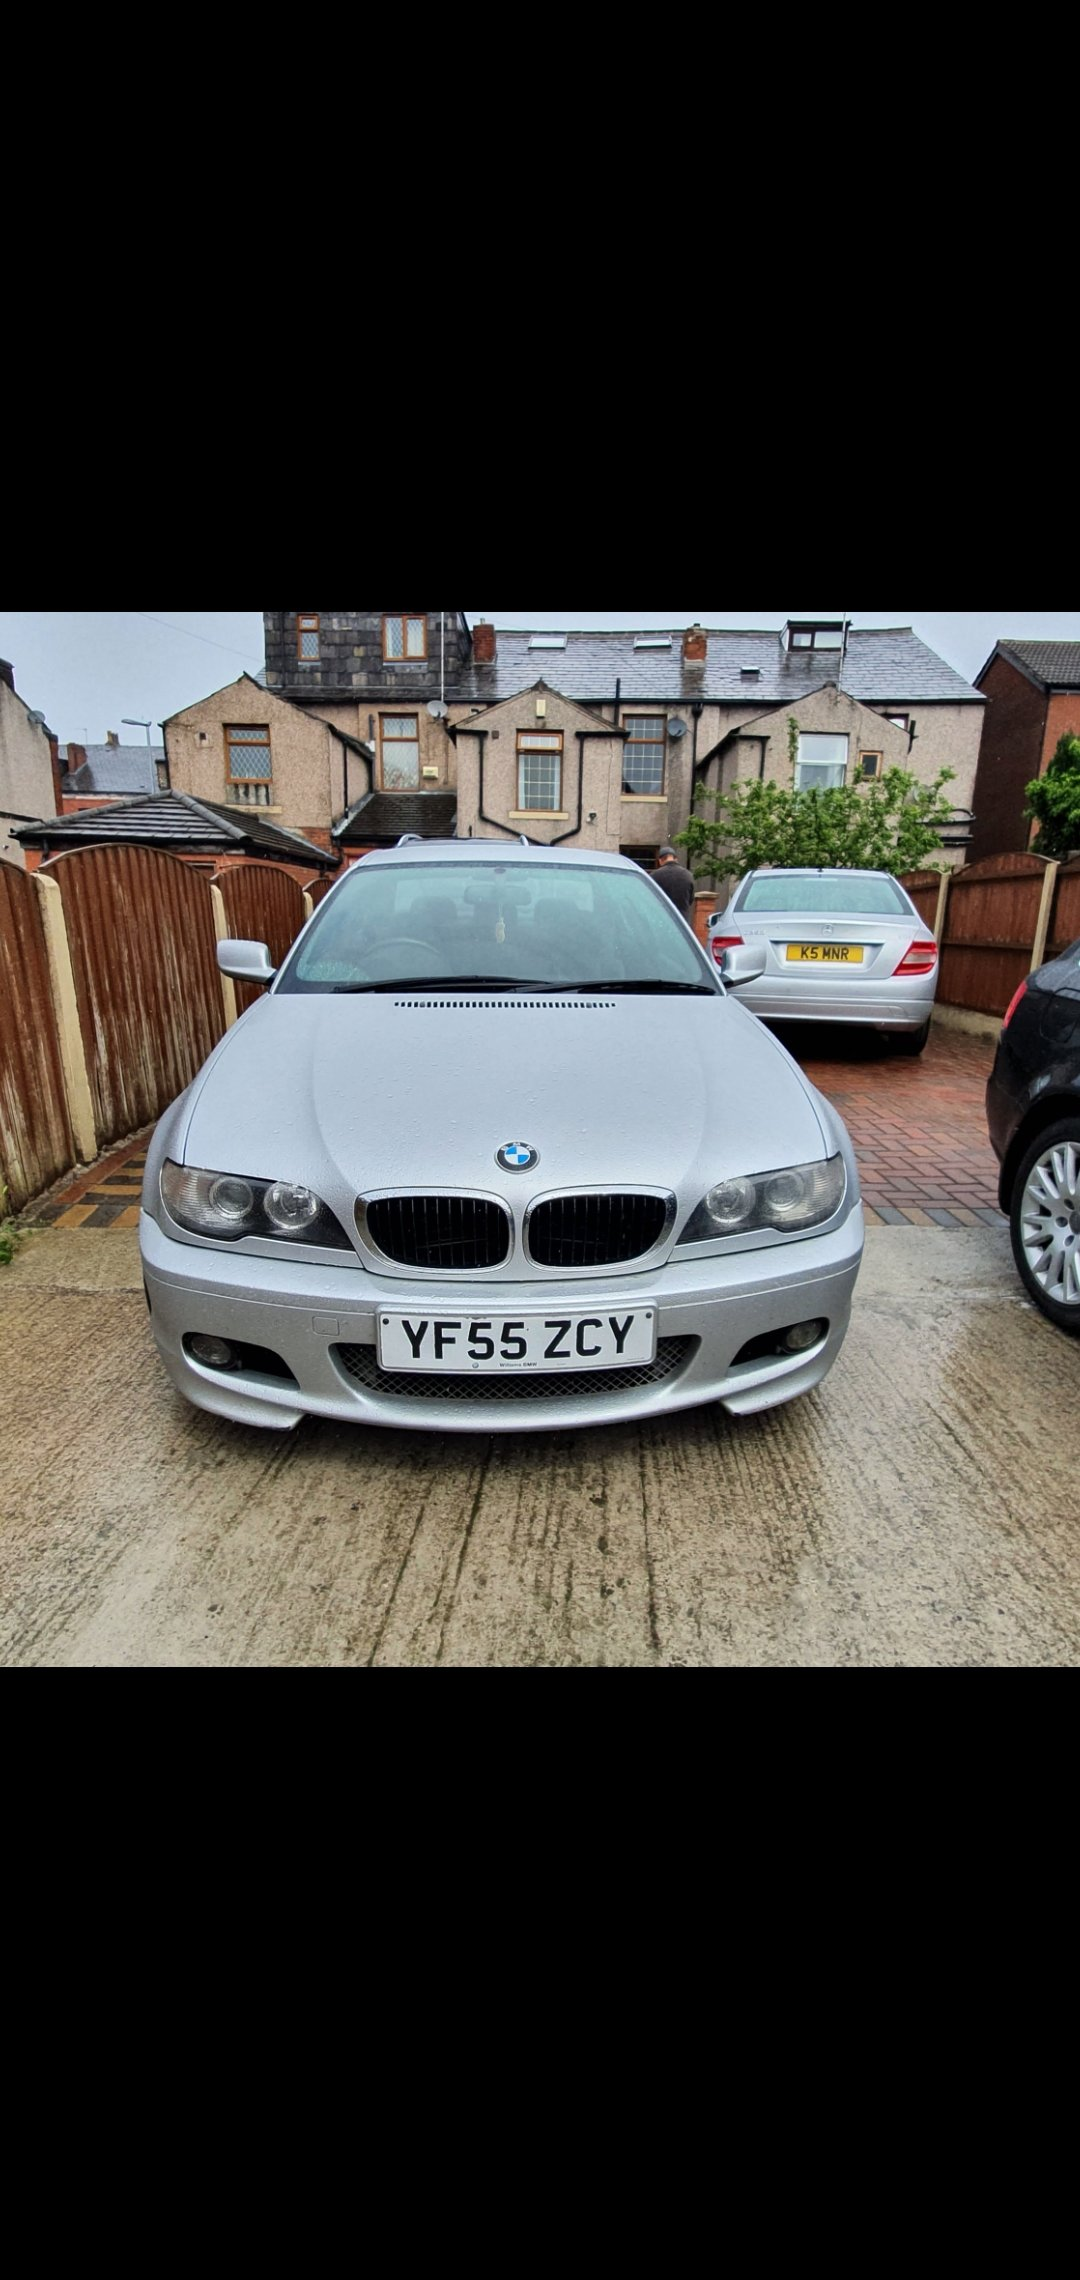 2005 BMW 320cd m sport 6 speed manual For Sale (picture 1 of 1)